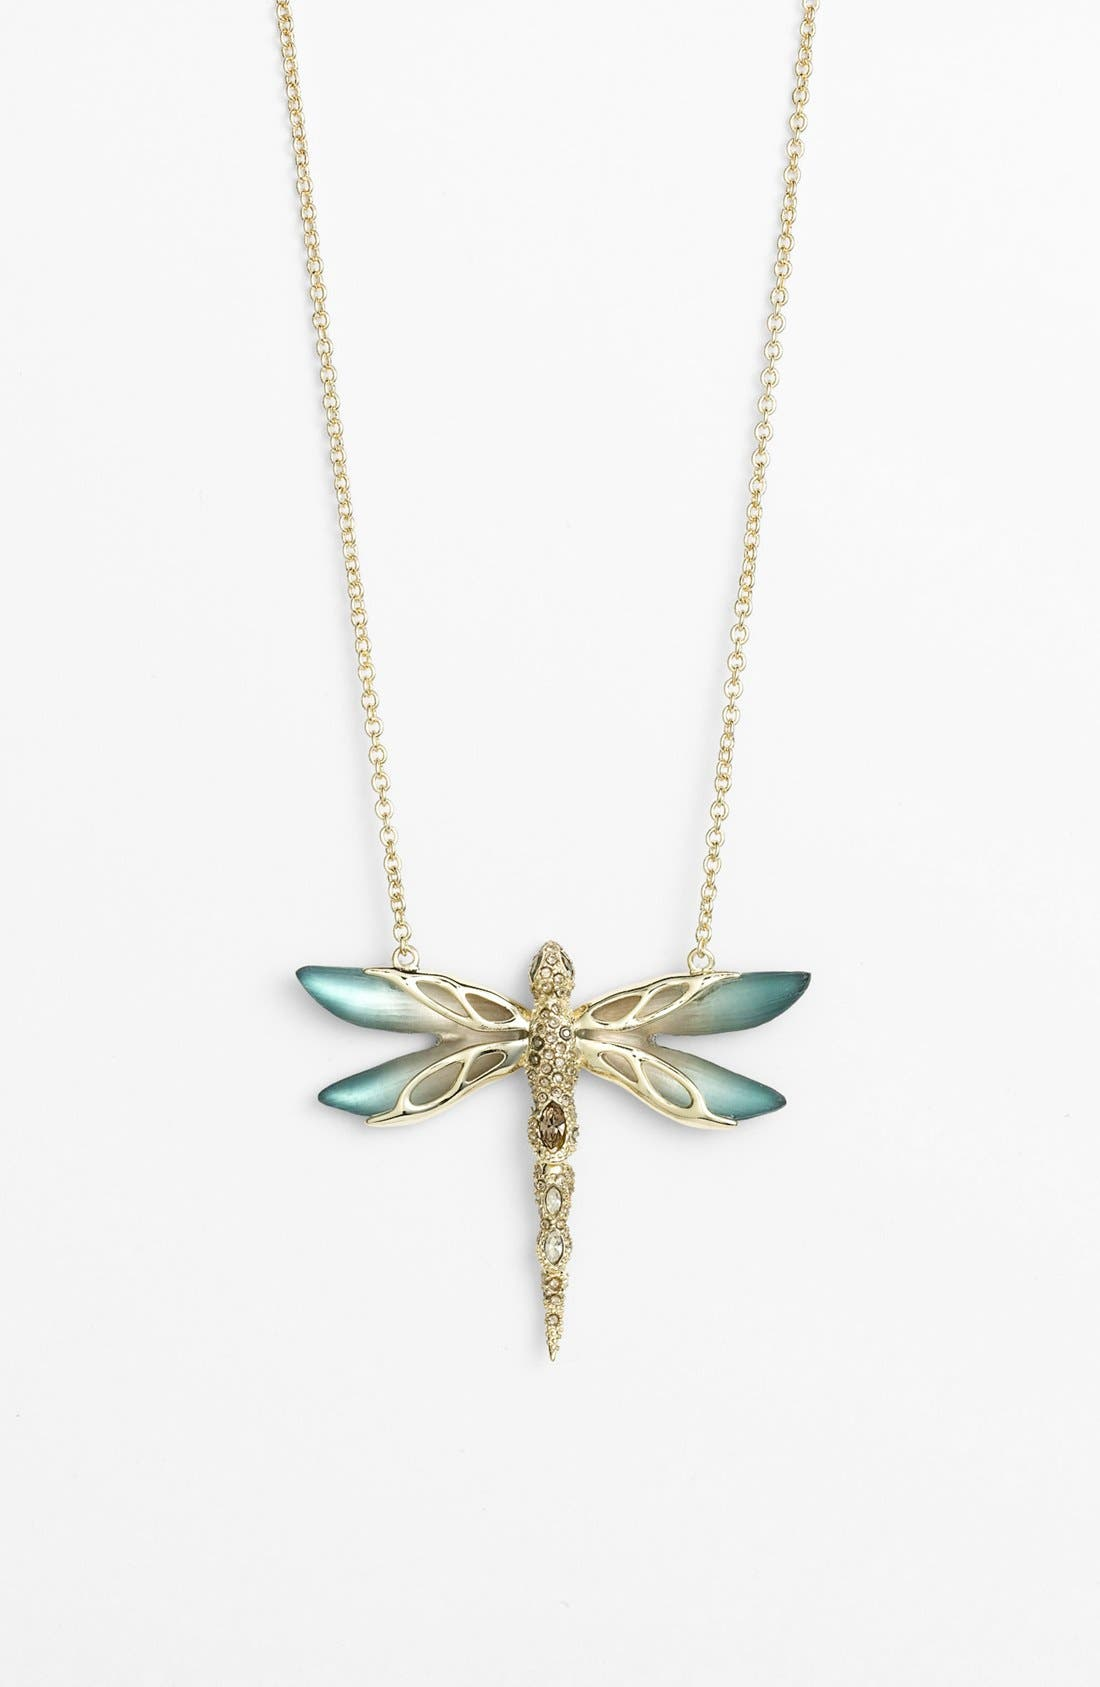 Main Image - Alexis Bittar 'Lucite® - Neo Bohemian' Pavé Dragonfly Pendant Necklace